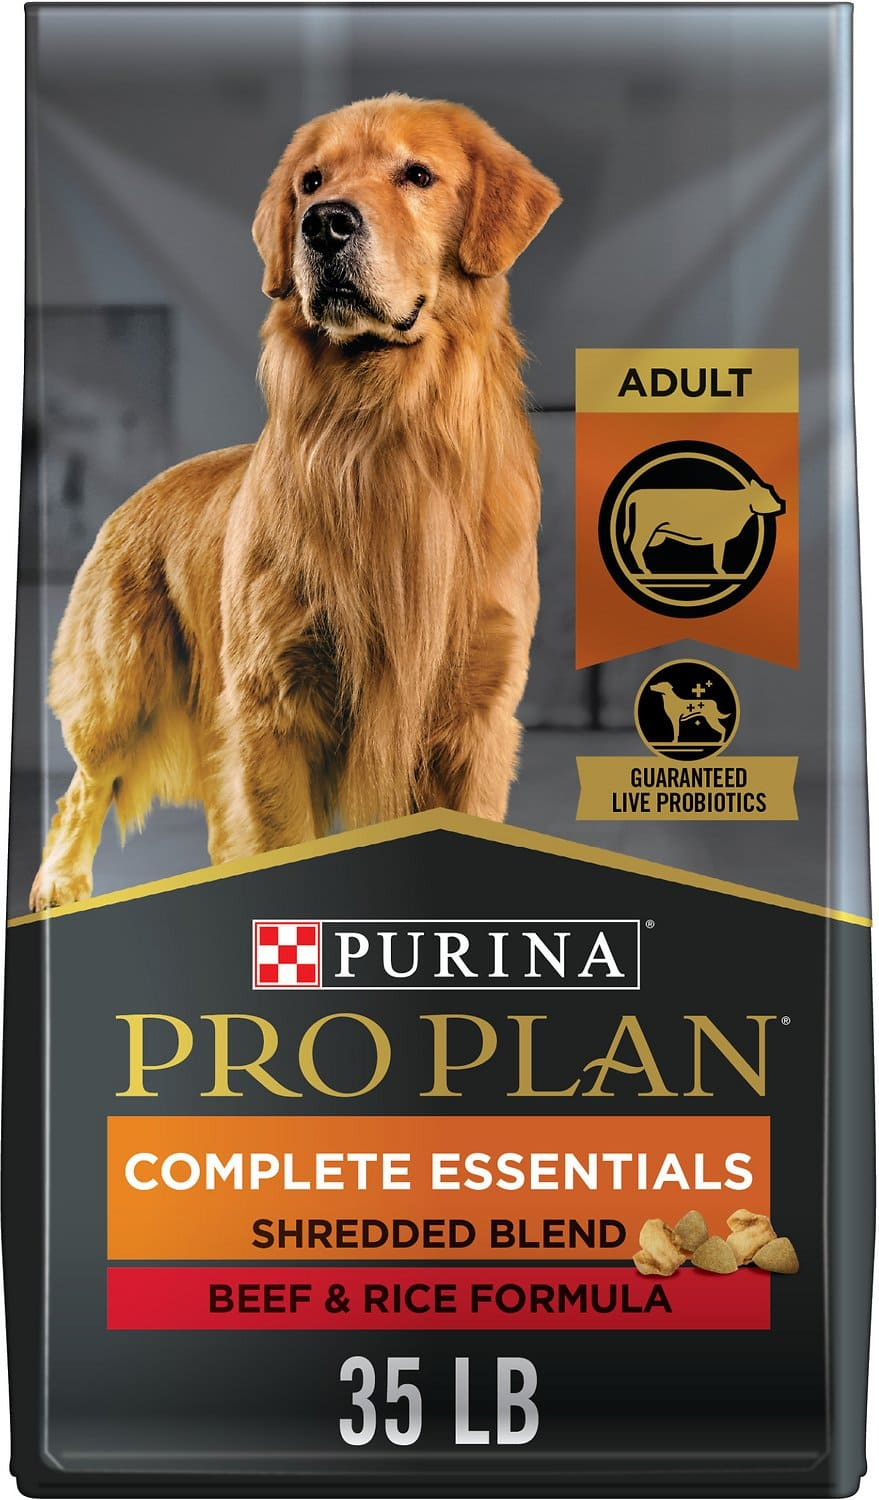 Purina Pro Plan Adult Complete Essentials Shredded Blend Formula for Dogs 35 lbs Beef & Rice 1